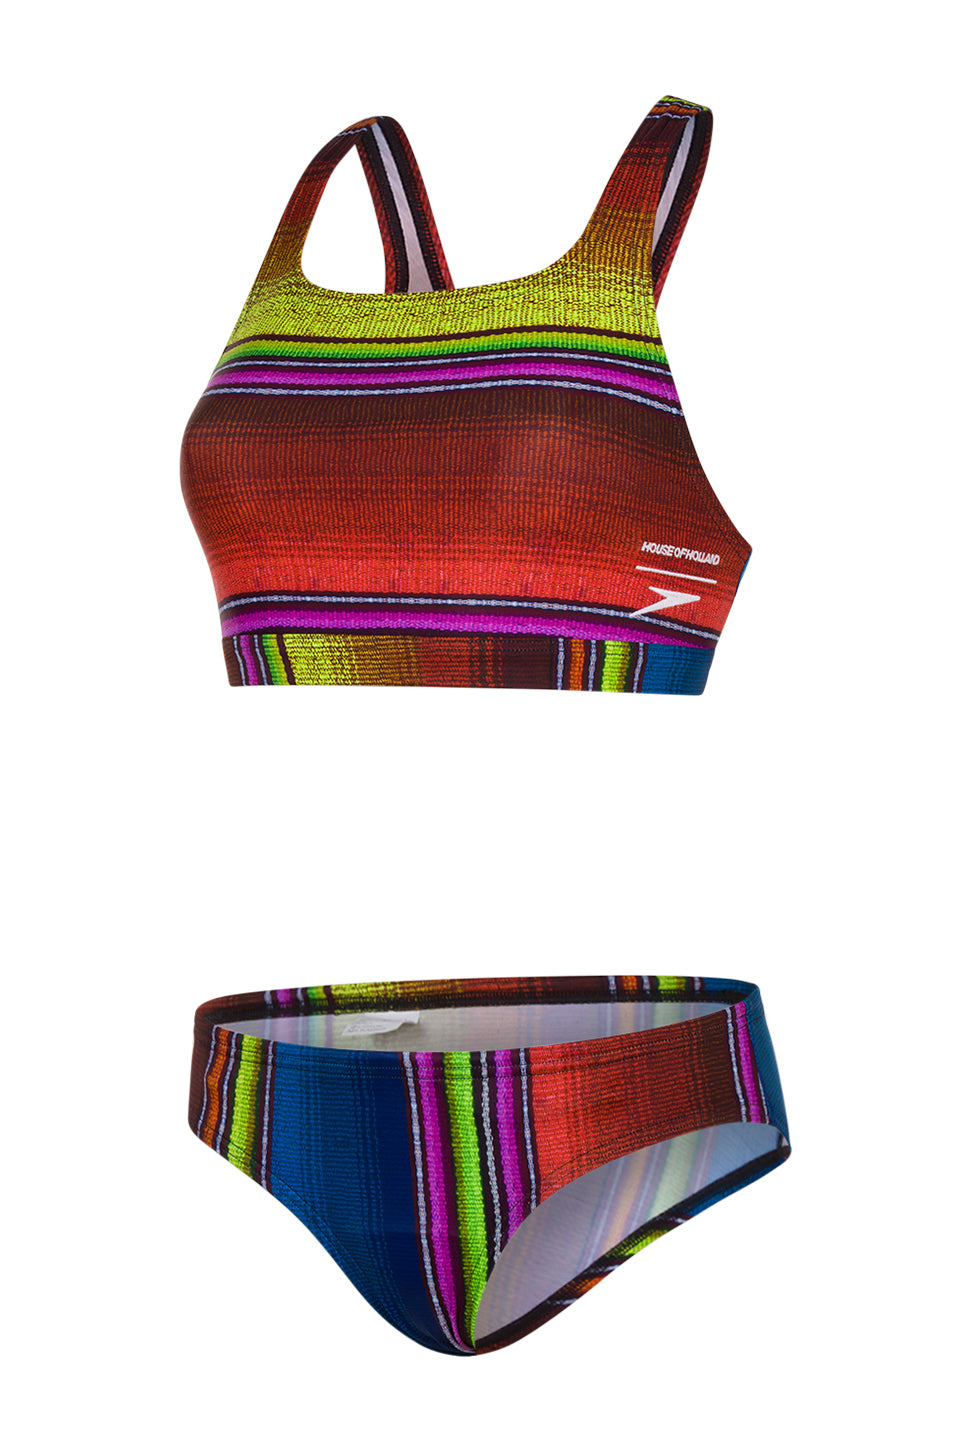 HoH x Speedo Sunset Stripe Swim Set